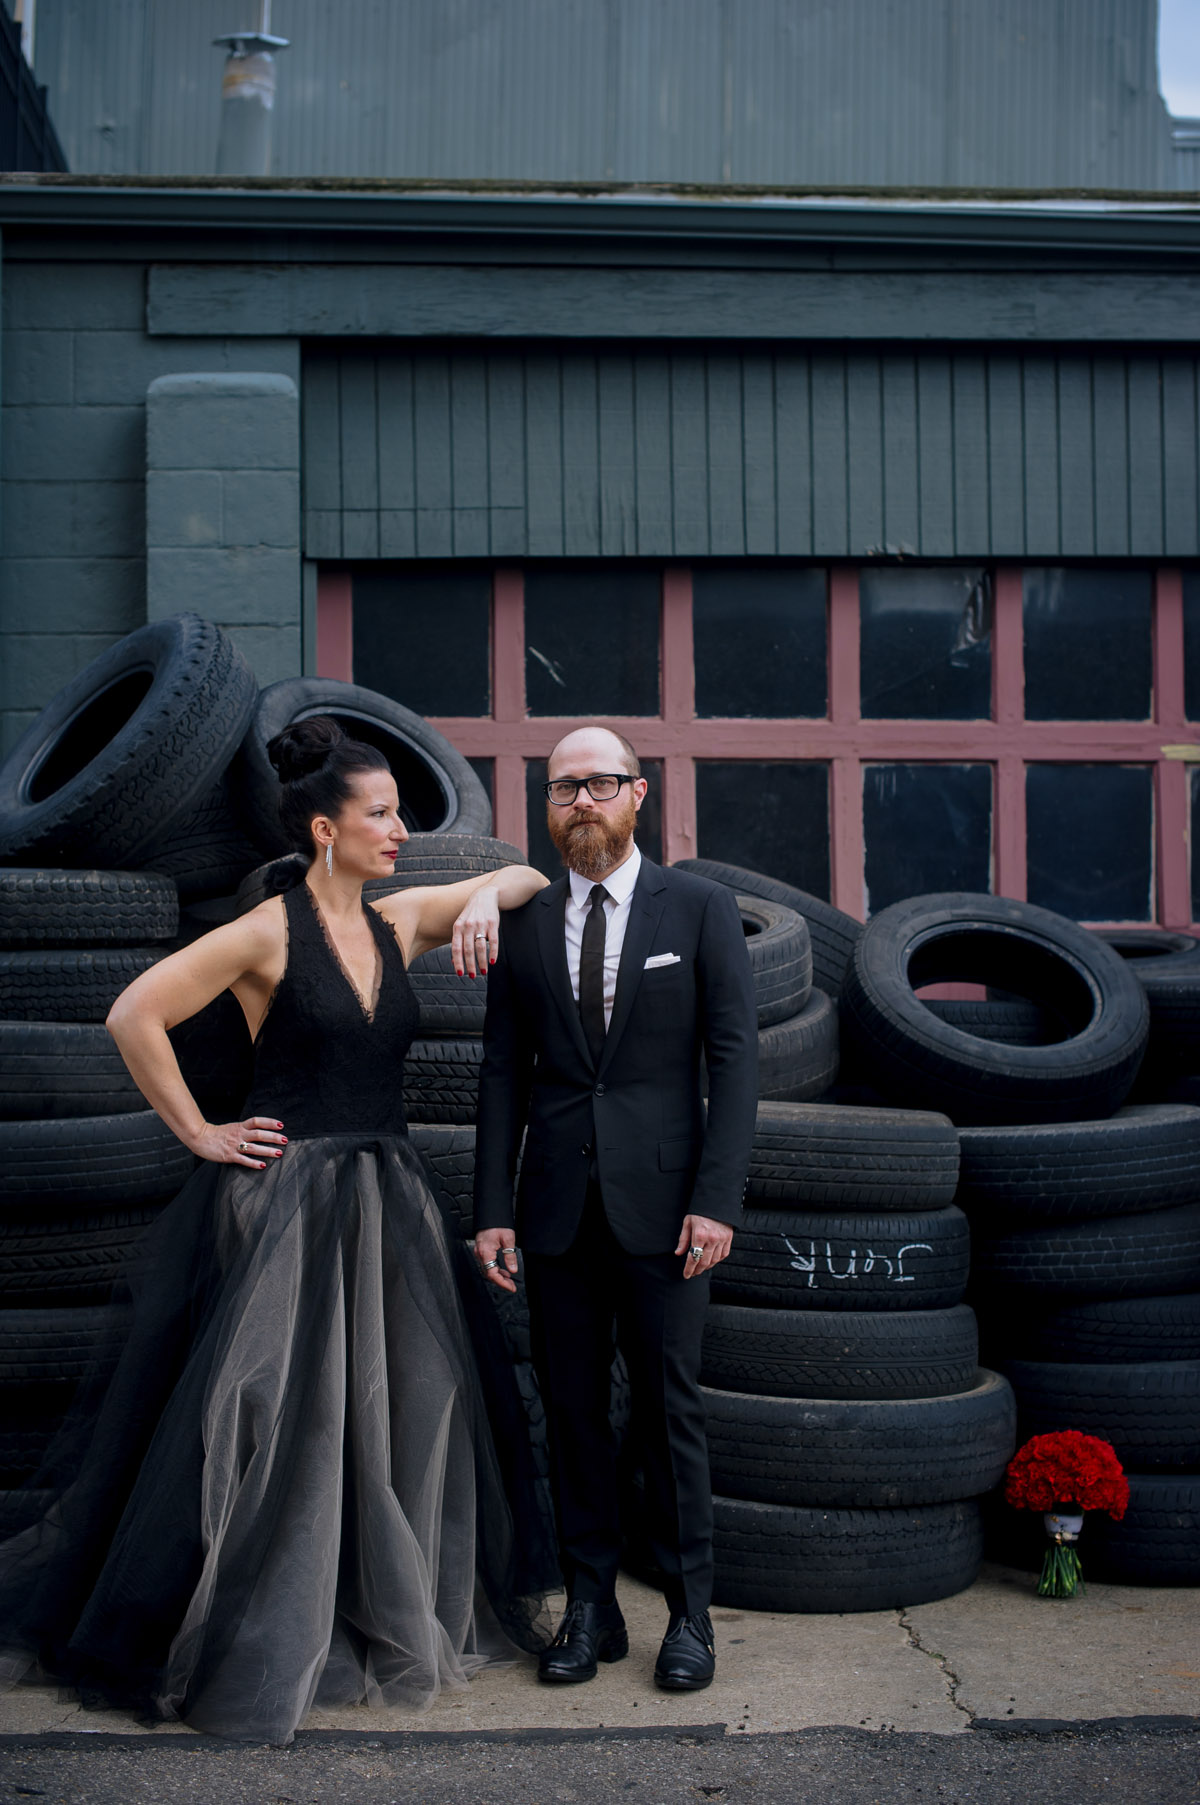 high fashion bride groom portrait in urban setting vera wang dior homme